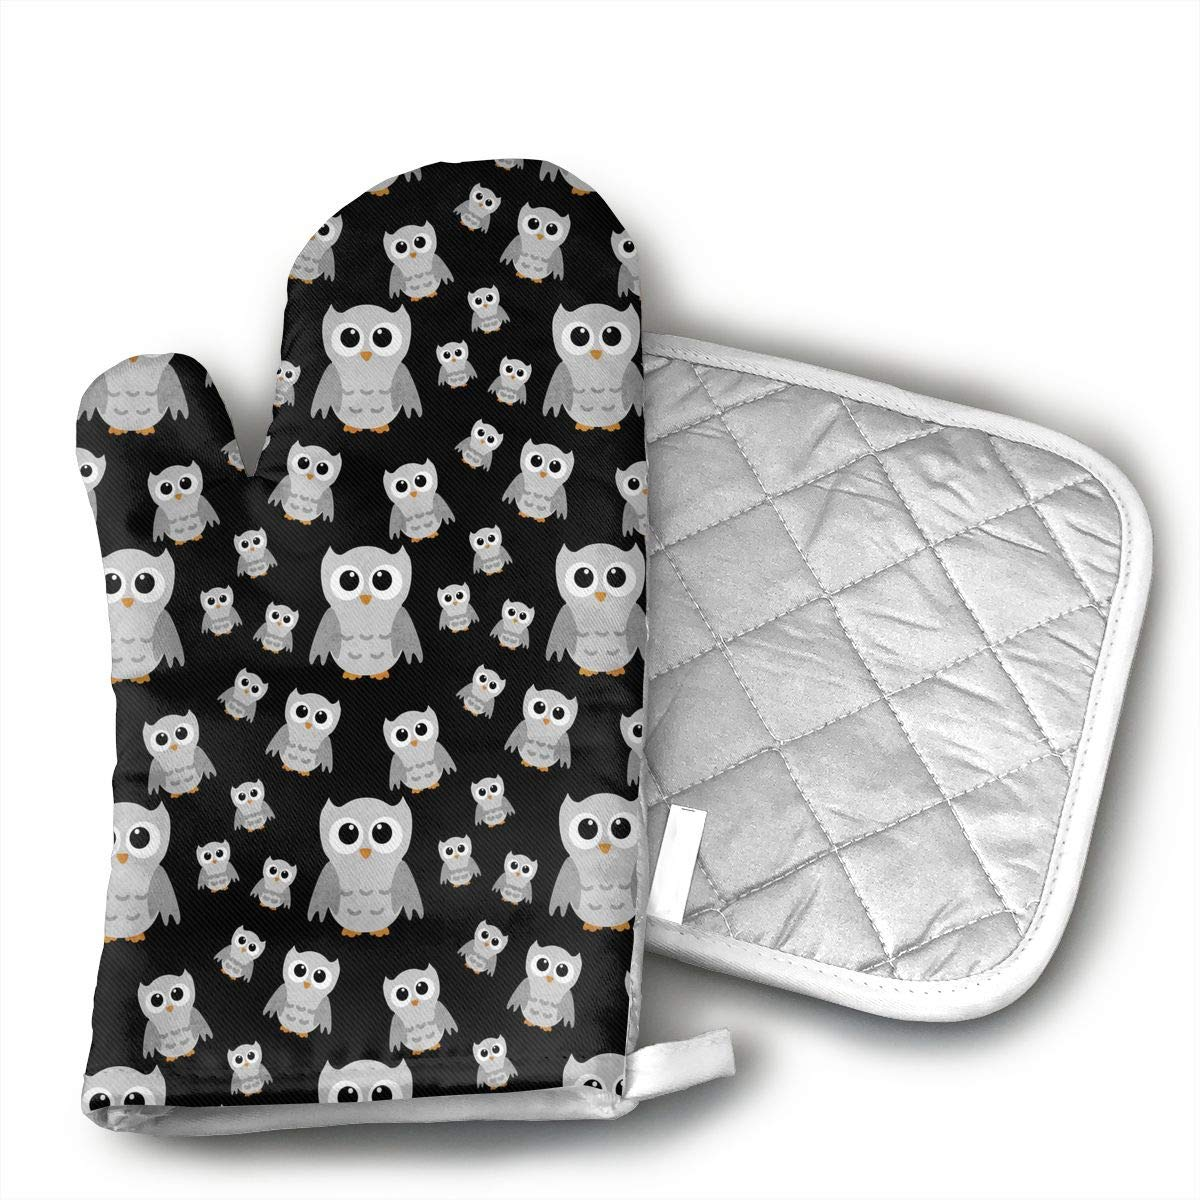 FSDGHVFIJTT ujd Grey Owl Neoprene Oven Mitts and Potholder Set-Heat Resistant Oven Gloves to Protect Hands and Surfaces with Non-Slip Grip, Hanging Loop-Ideal for Handling Hot Cookware Items